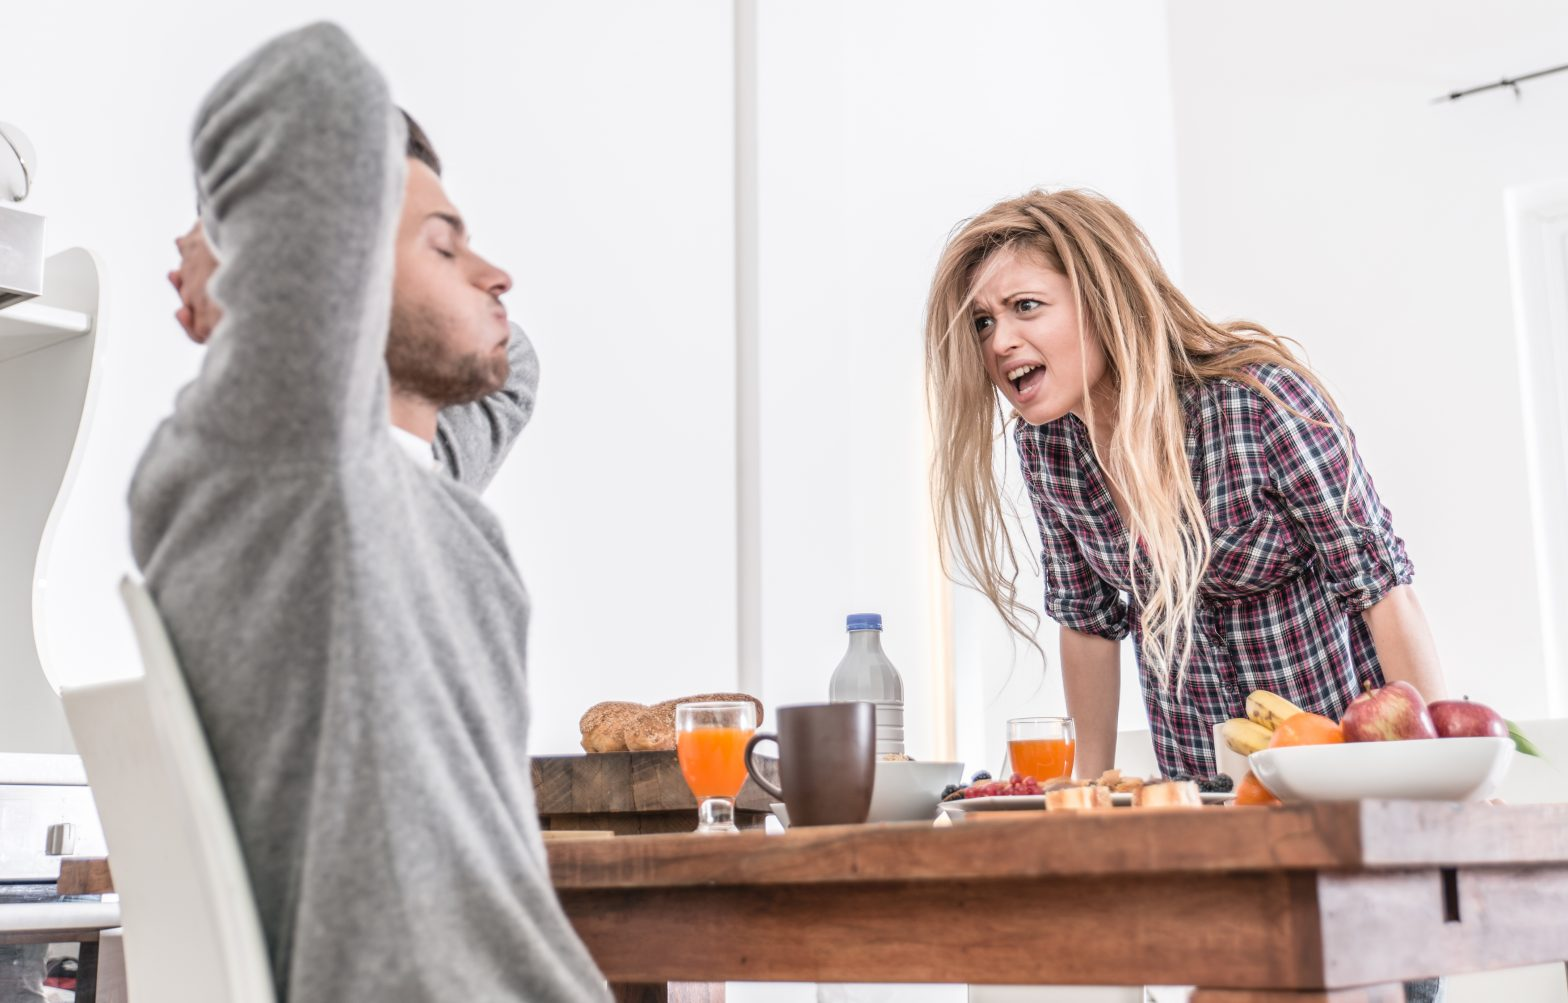 Couple fighting across the table over breakfast. Woman screaming at a man and the man has his hands on his head.